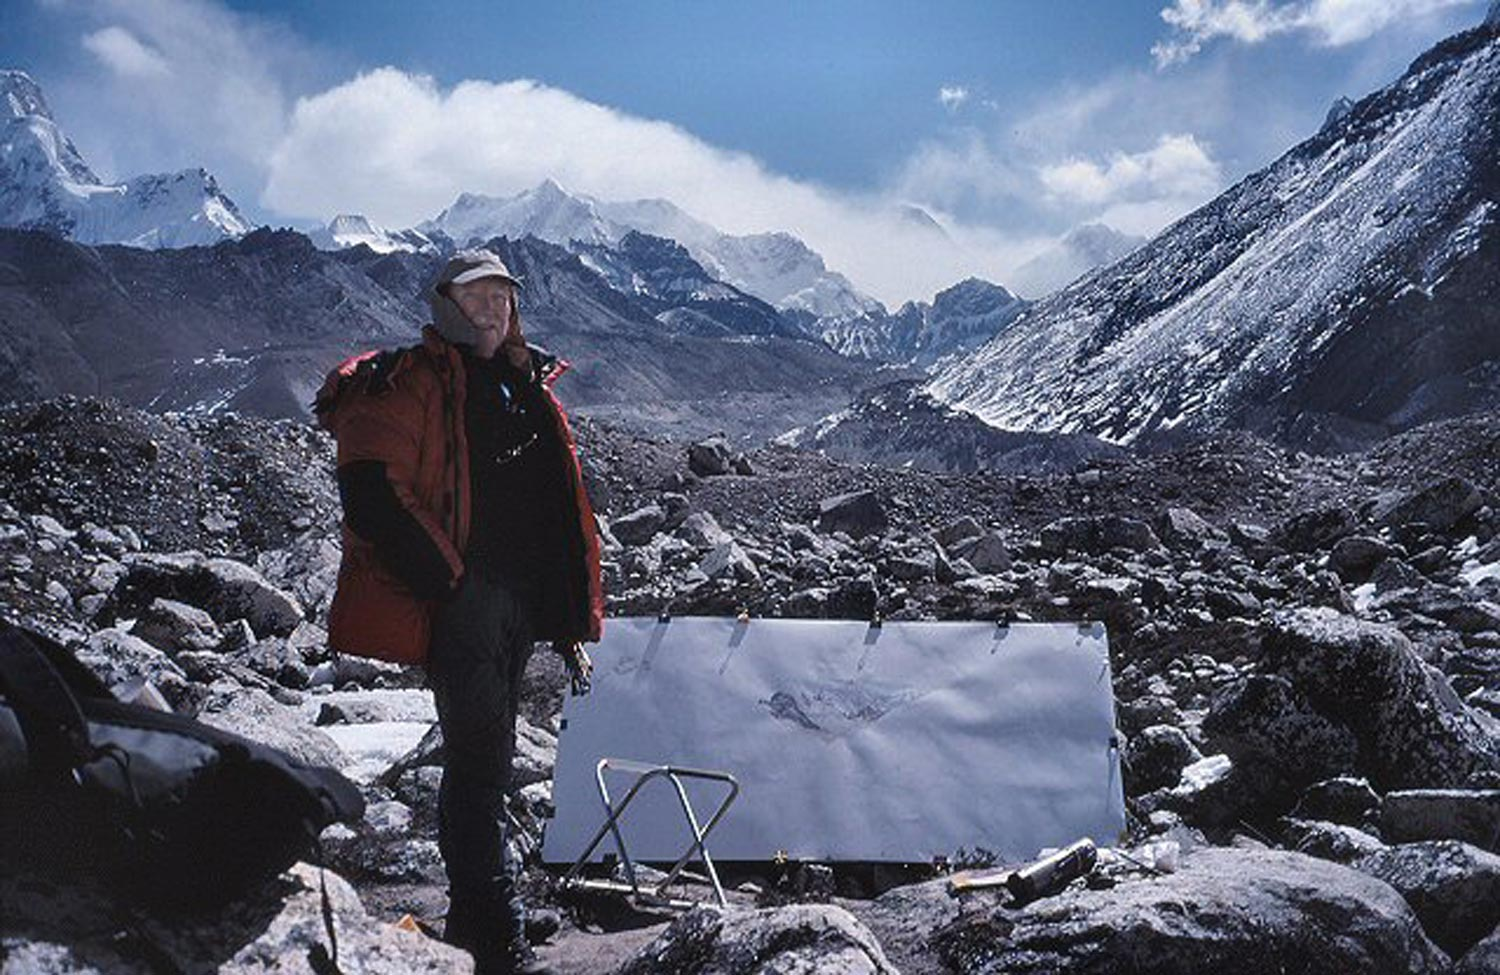 In some ways the technique isn't as risky as the journey. Tony Foster with unfinished painting of Everest from Ngozumba above Gokyo, Nepal, 2005. Photo by Mike Nathan